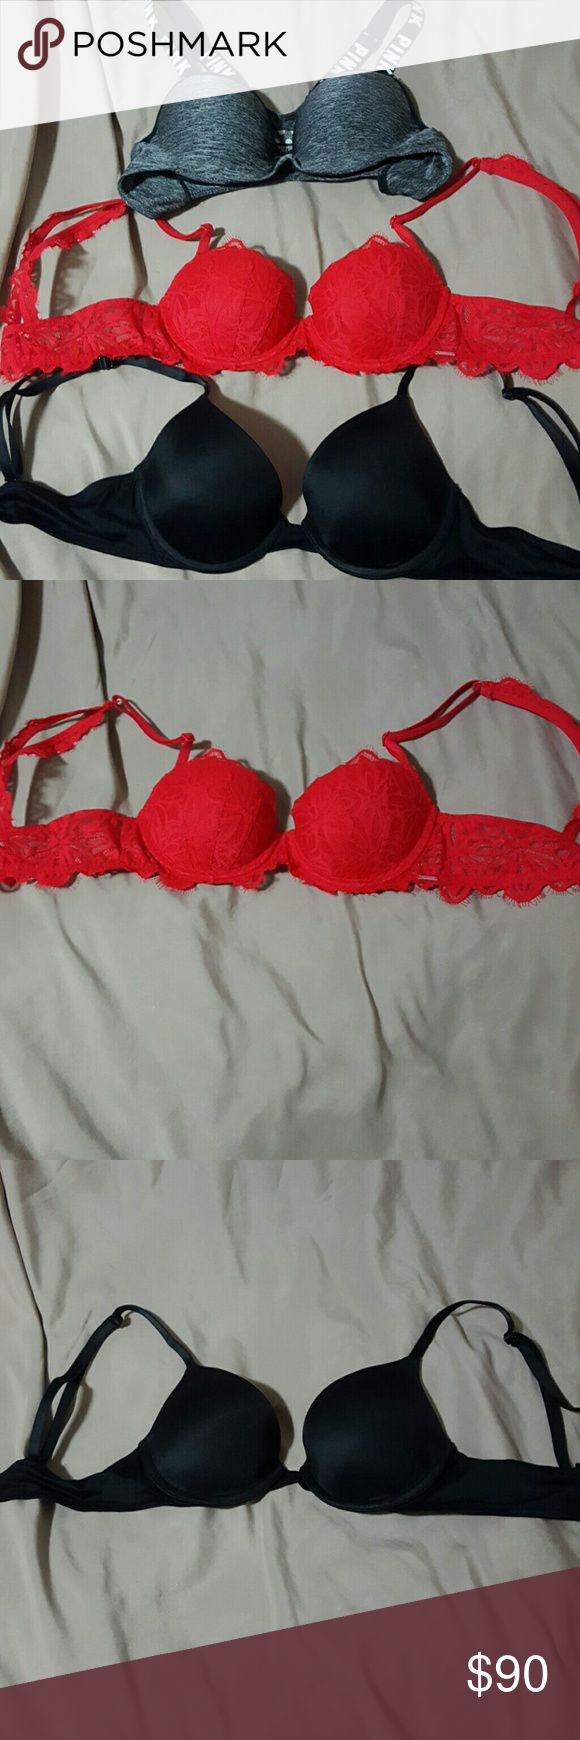 Pink victorias secret bras Red and black ones when once, sports bra lightly loved. $10 off when bought all together, or $30 a piece. No trades please. PINK Victoria's Secret Intimates & Sleepwear Bras